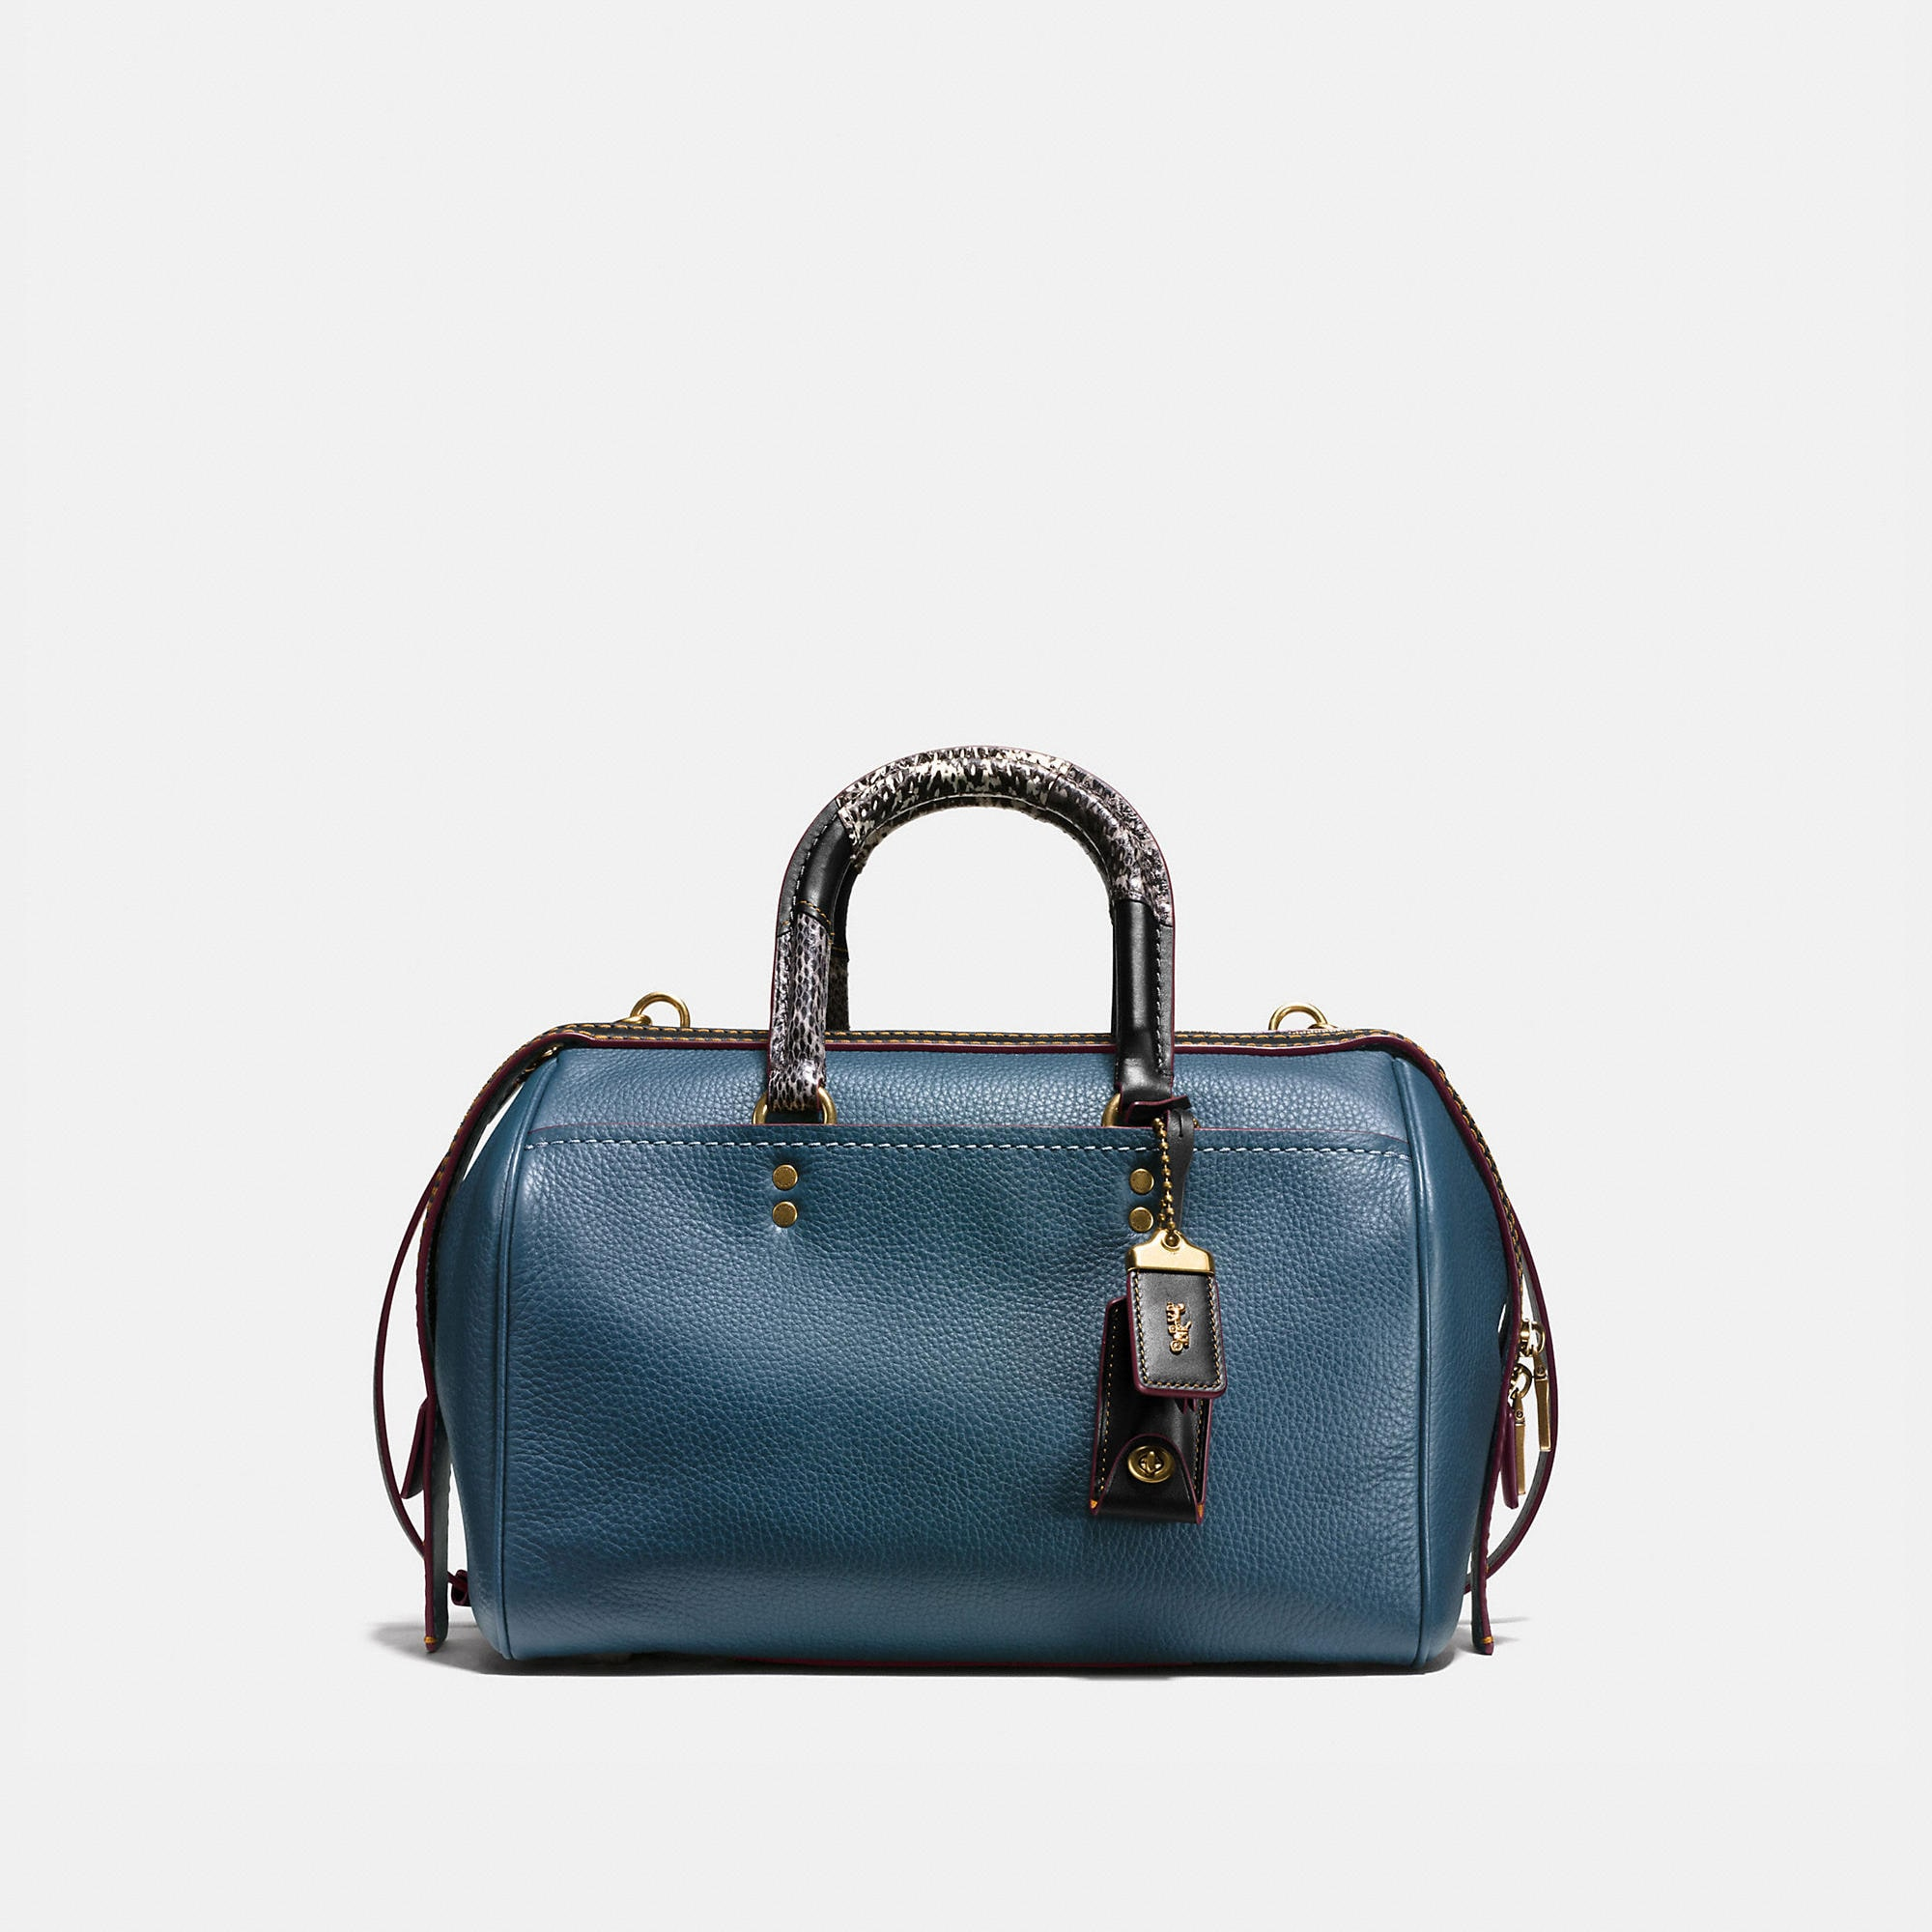 Silver leather tote bag uk - Rogue Satchel In Glovetanned Pebble Leather